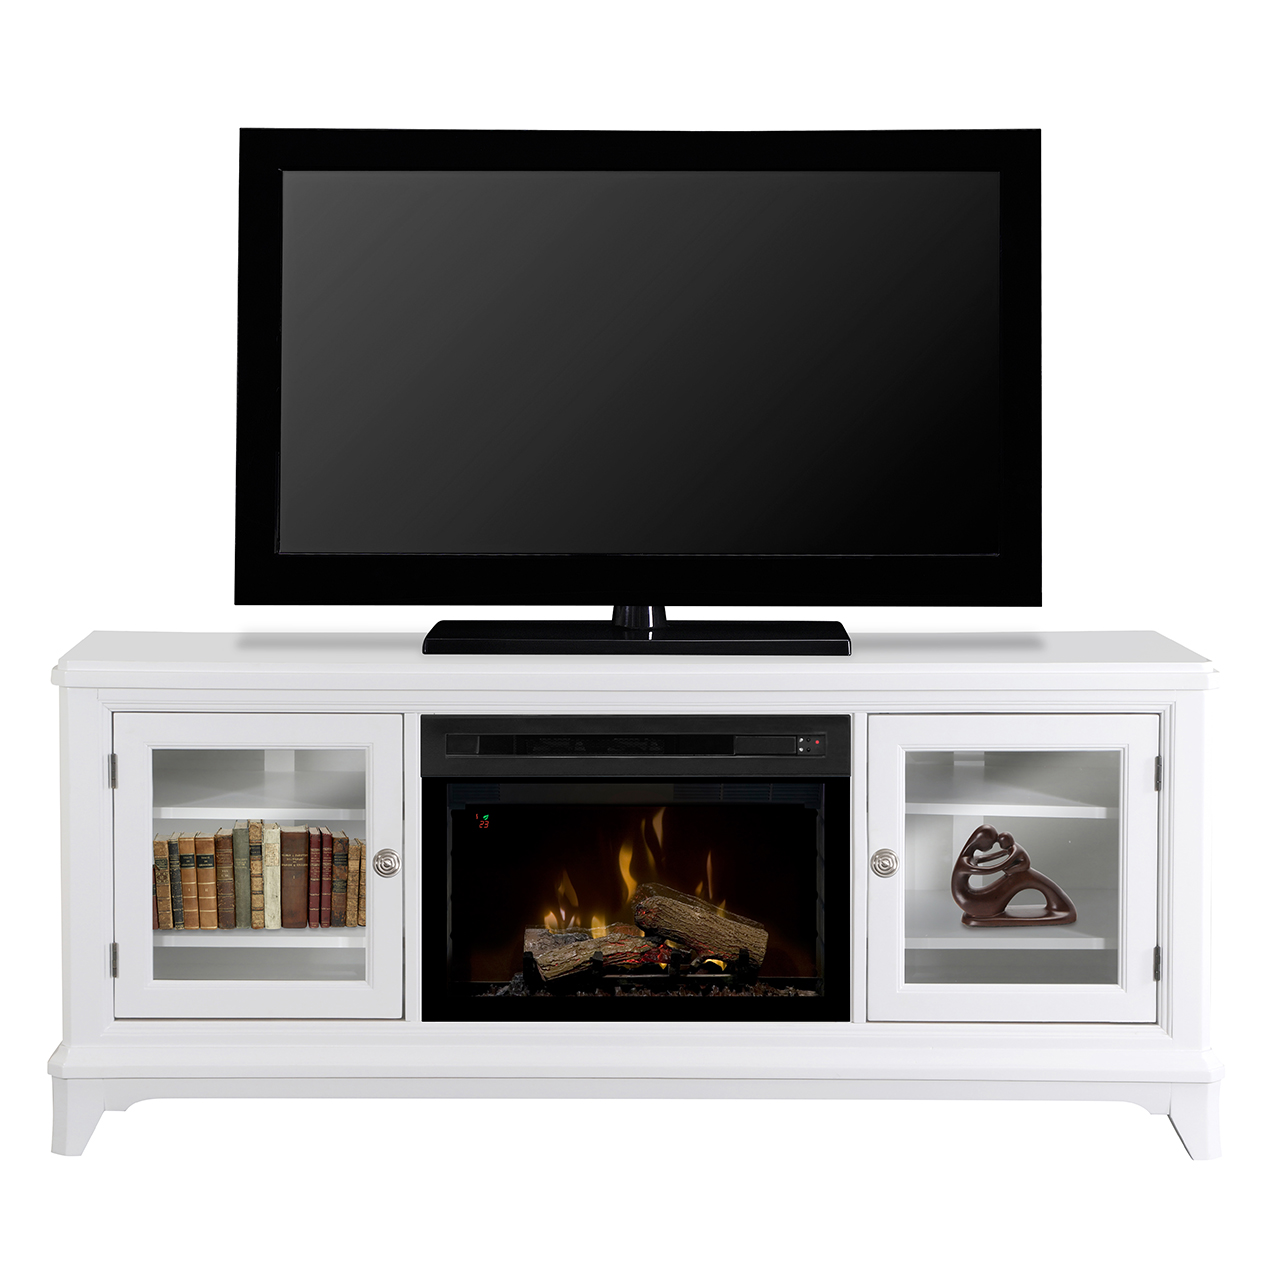 Electric Fireplaces That Heat 1 000 Sq Ft